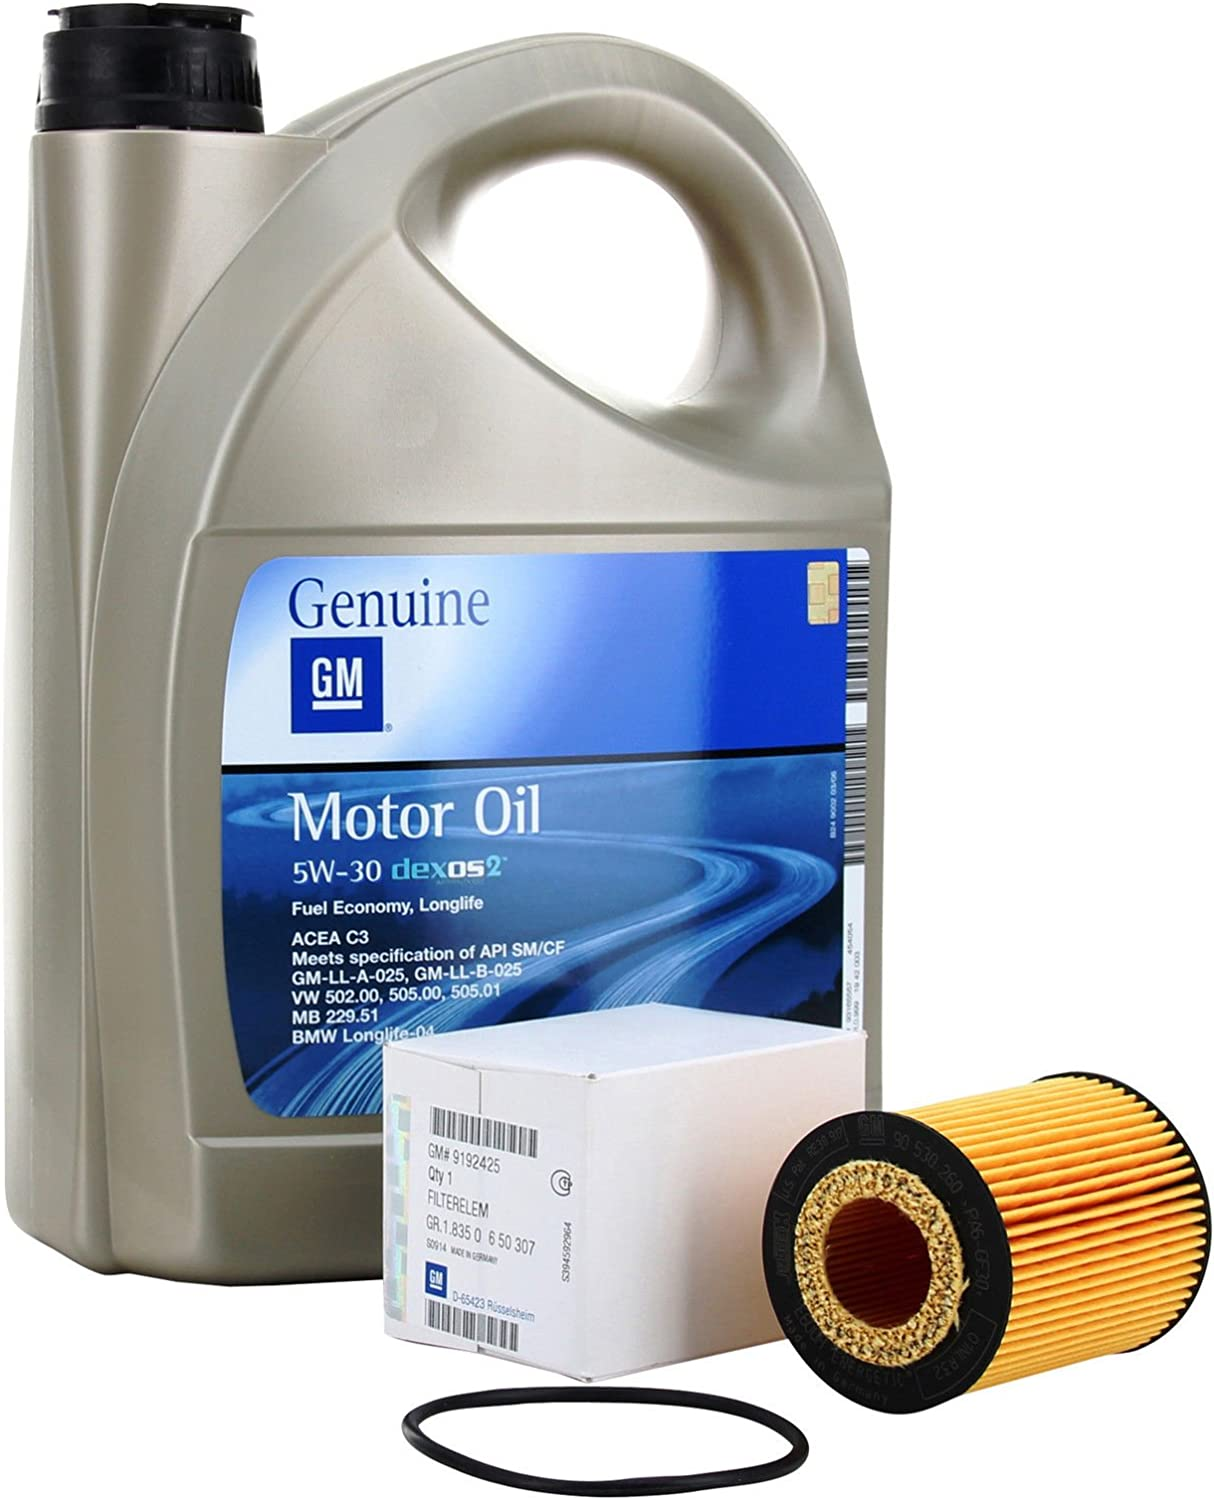 KIT FILTRO ACEITE MOTOR GM General Motor OPEL Oil 5w30 5 Litros ...